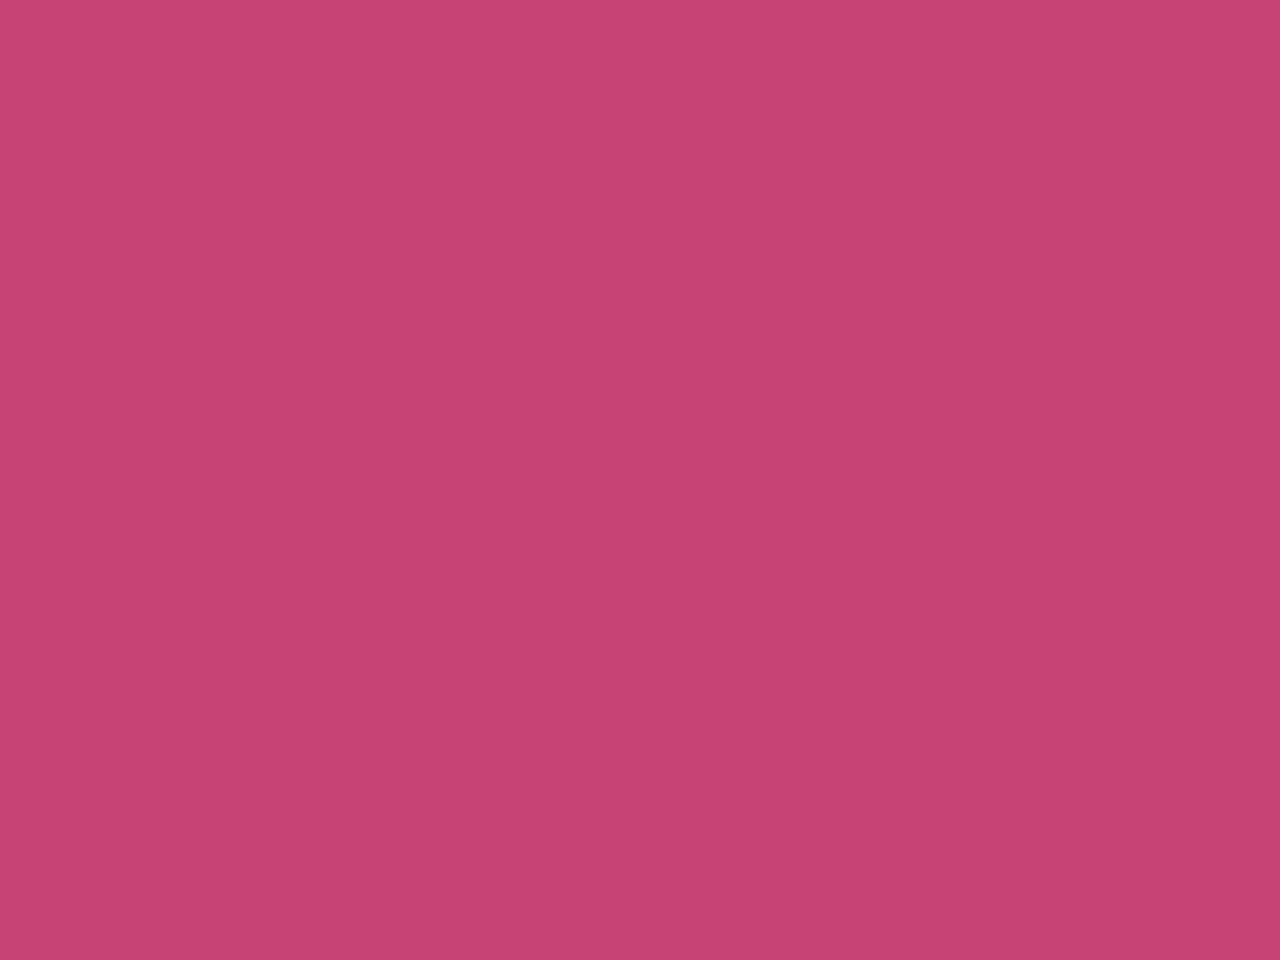 1280x960 Fuchsia Rose Solid Color Background